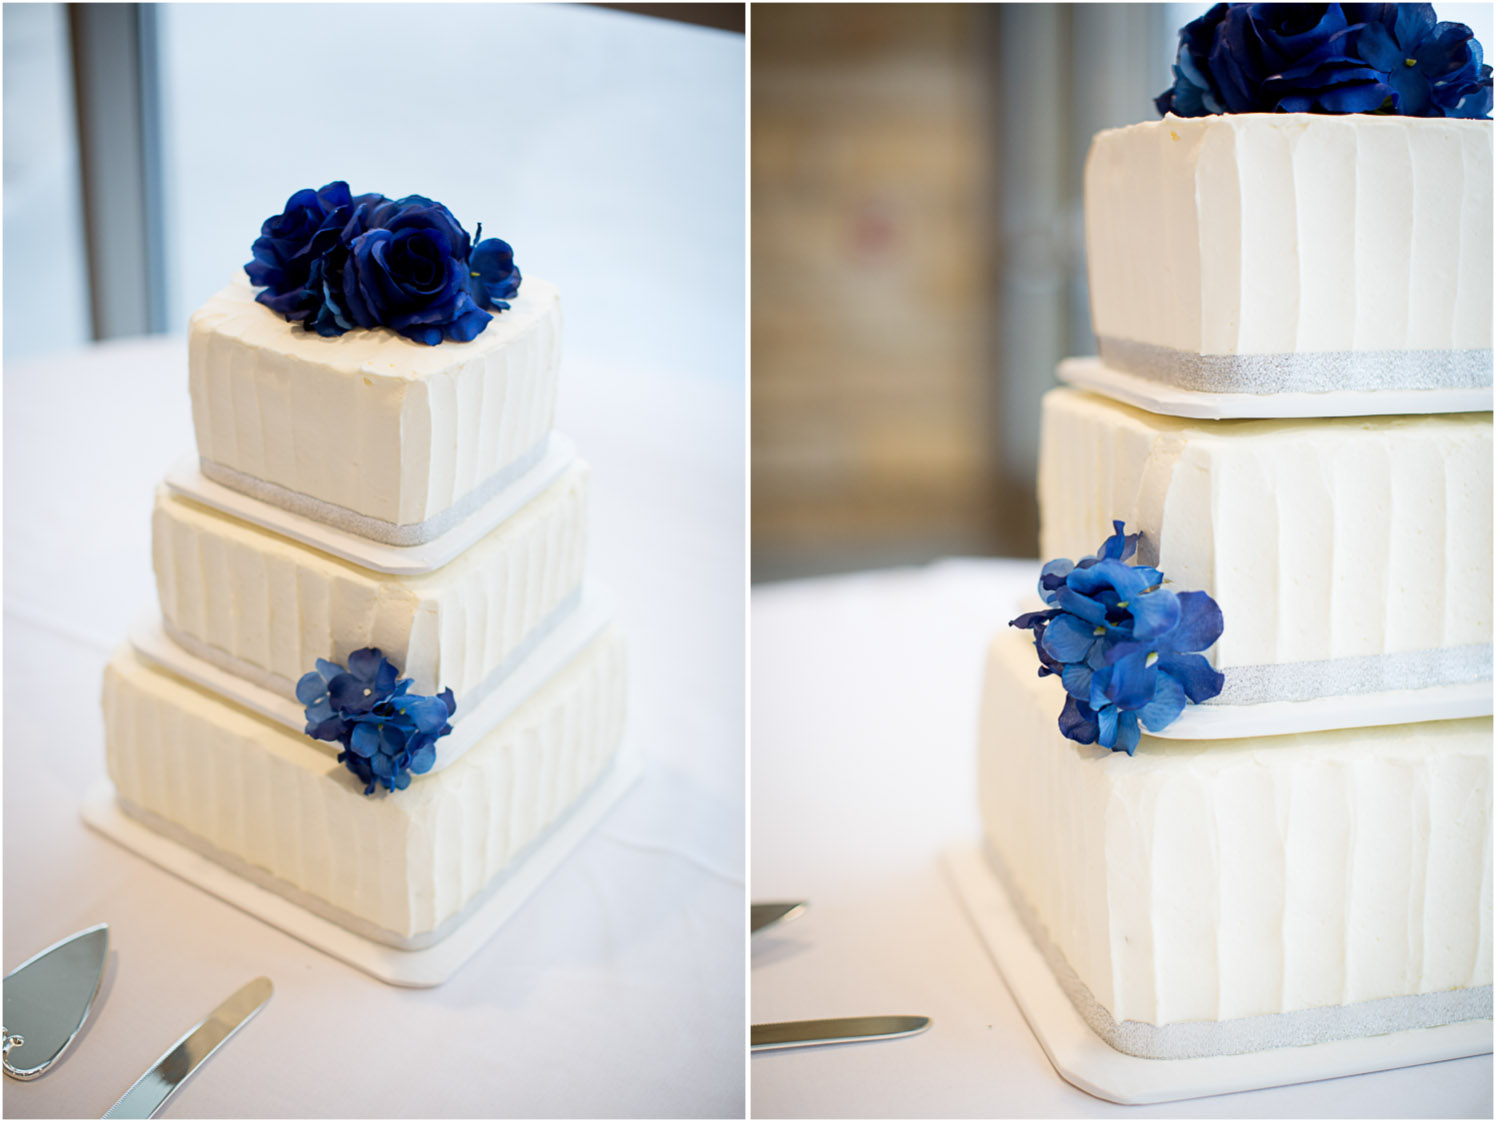 16-eagan-community-center-weddings-minnesota-winter-rain-wedding-white-cake-blue-flowers-mahonen-photography.jpg